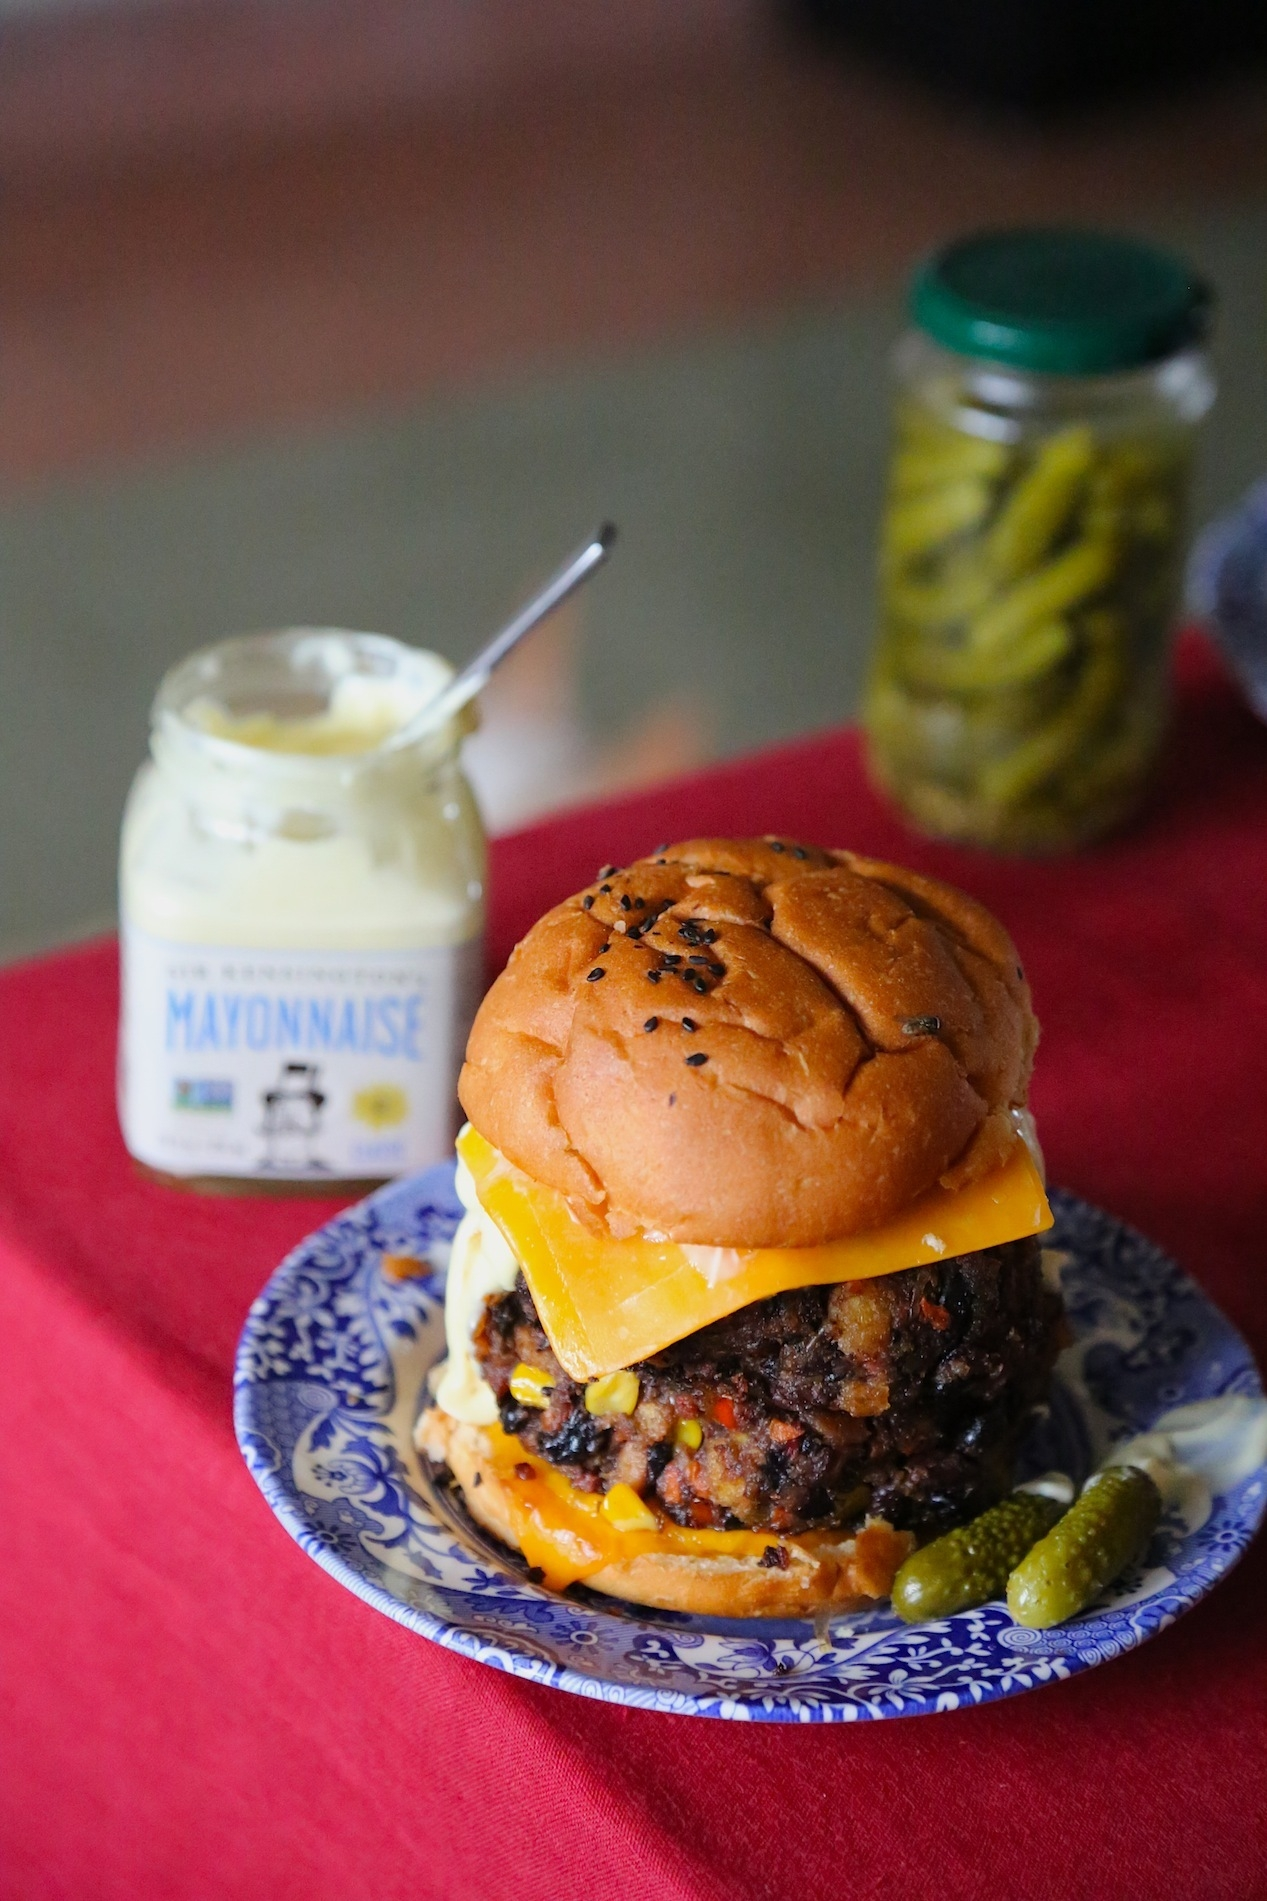 CORN AND BLACK BEAN BURGERS